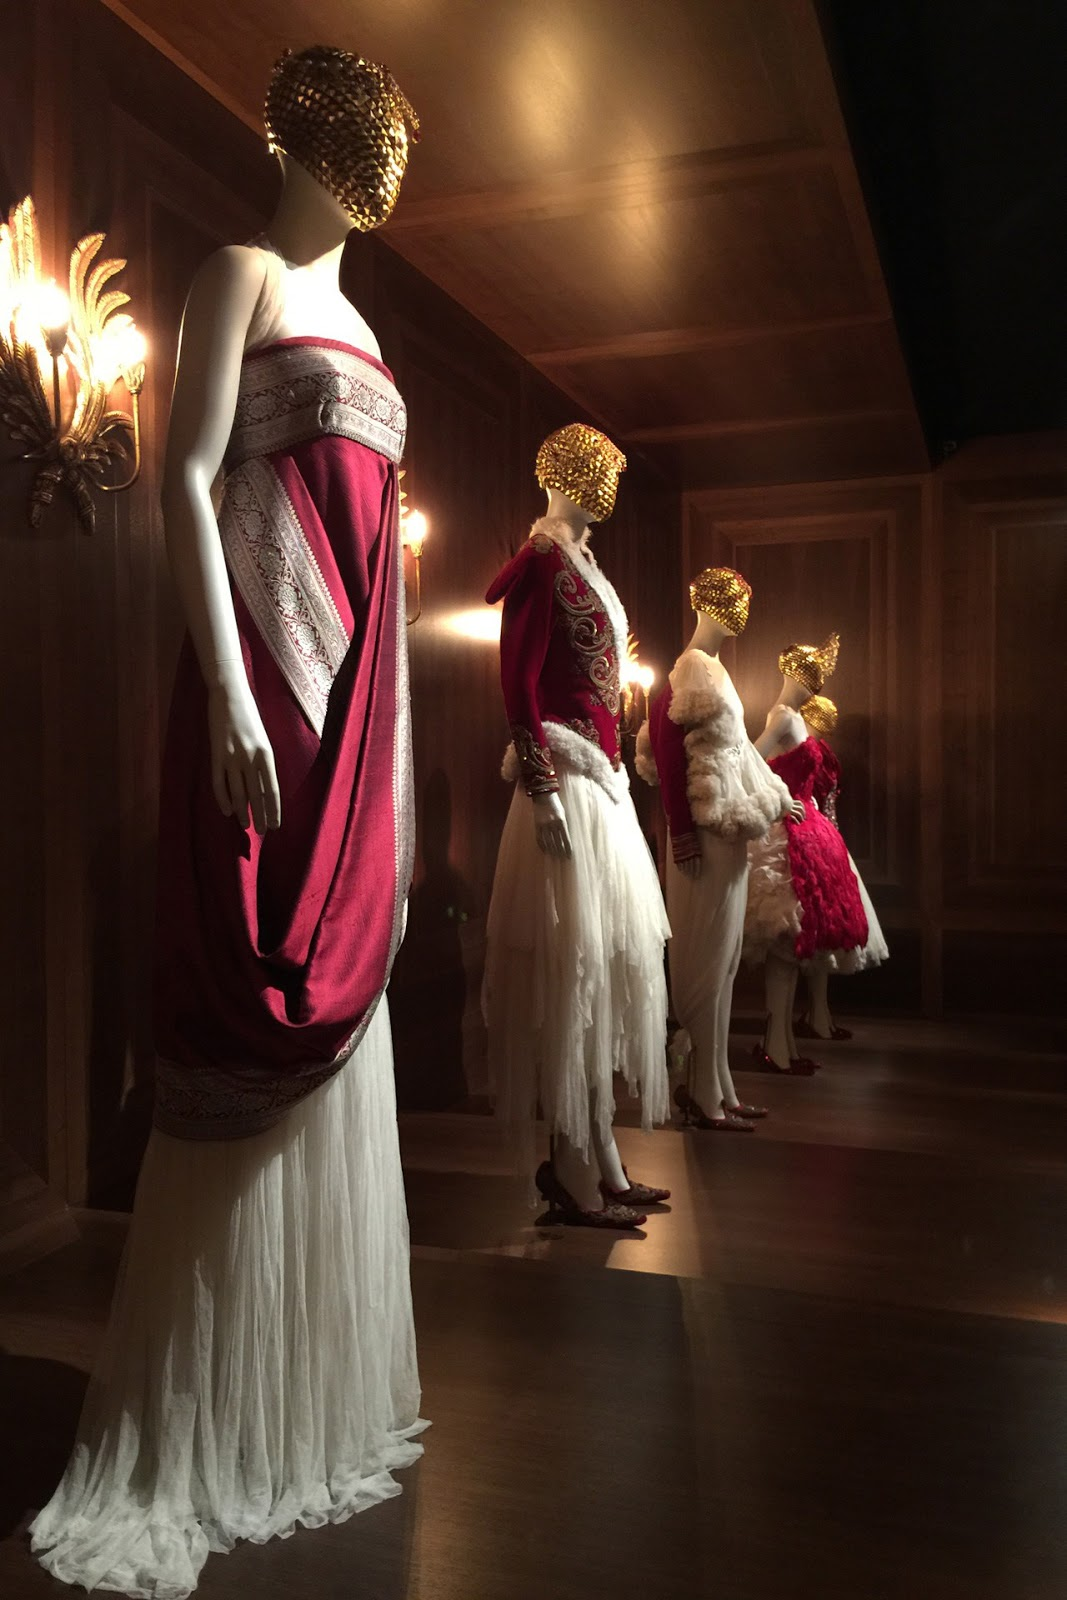 """Romantic Nationalism"" installation featuring the Widows of Culloden Fall/Winter 2006 dresses / via fashioned by love british fashion blog / Alexander Mcqueen Savage Beauty fashion exhibition Victoria&Albert Museum London"